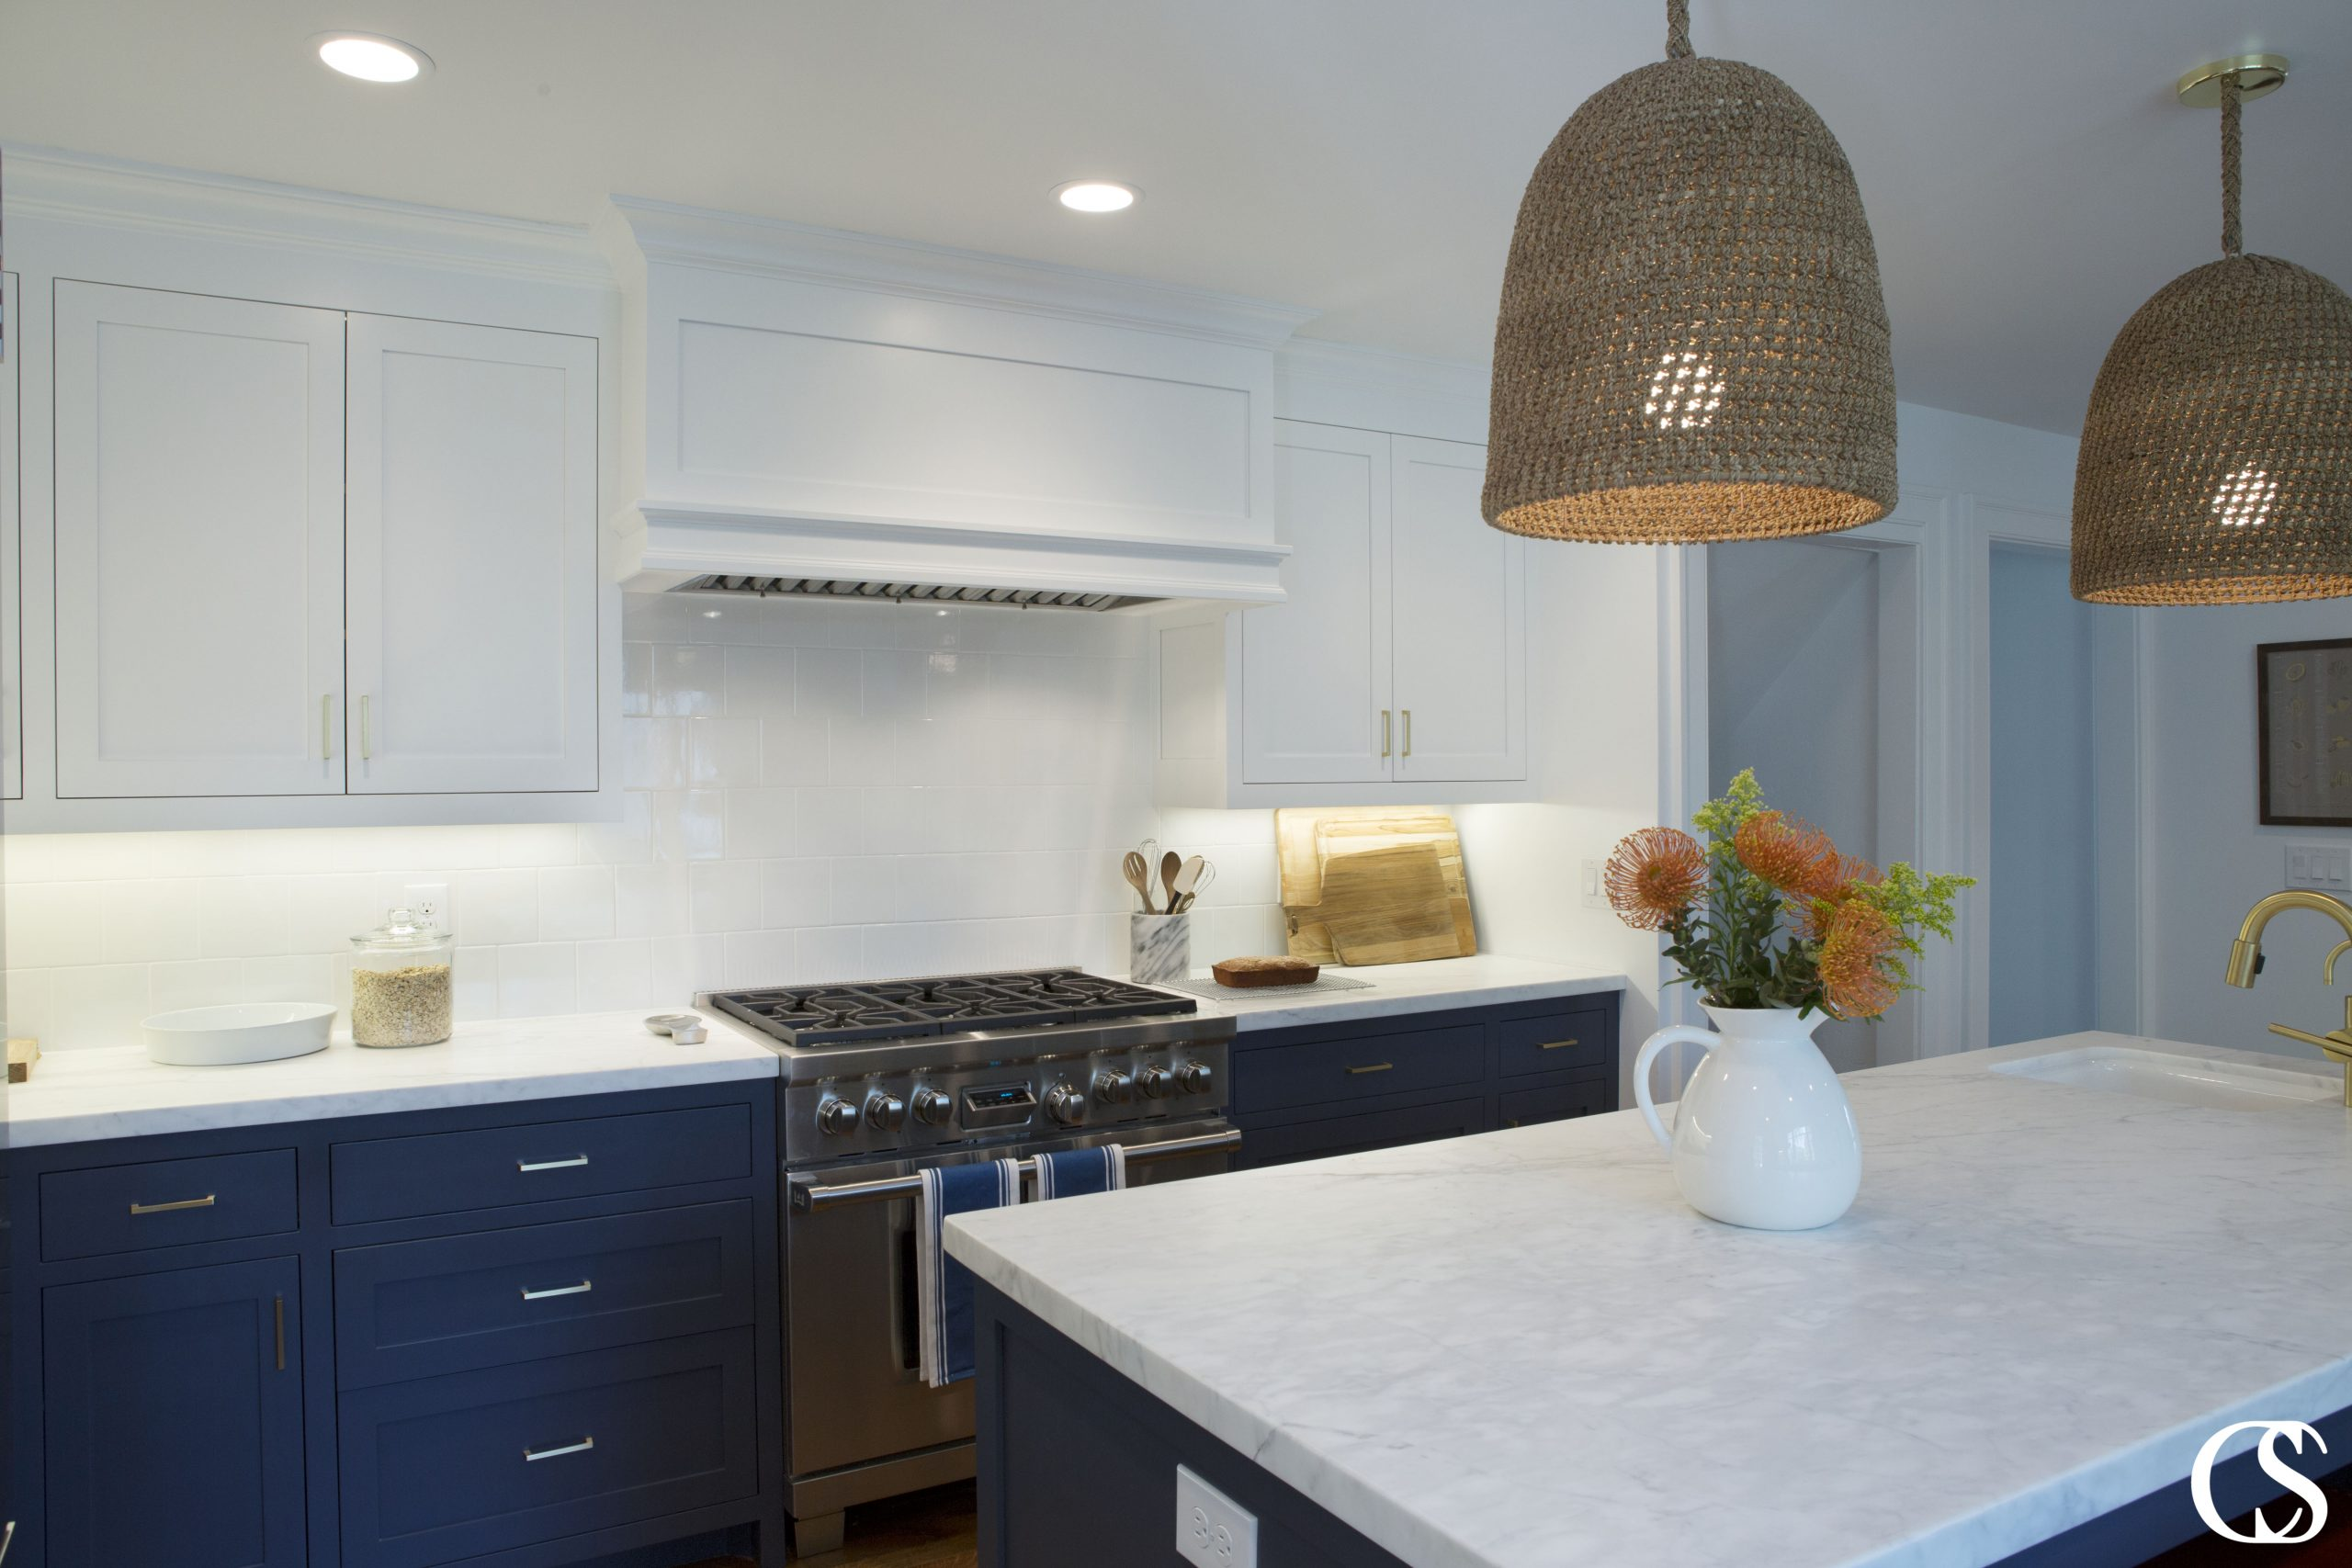 Why not pair blue and white to create truly unique custom cabinets? This color combo is a classic but still makes the space feel bright, balanced, and FRESH.